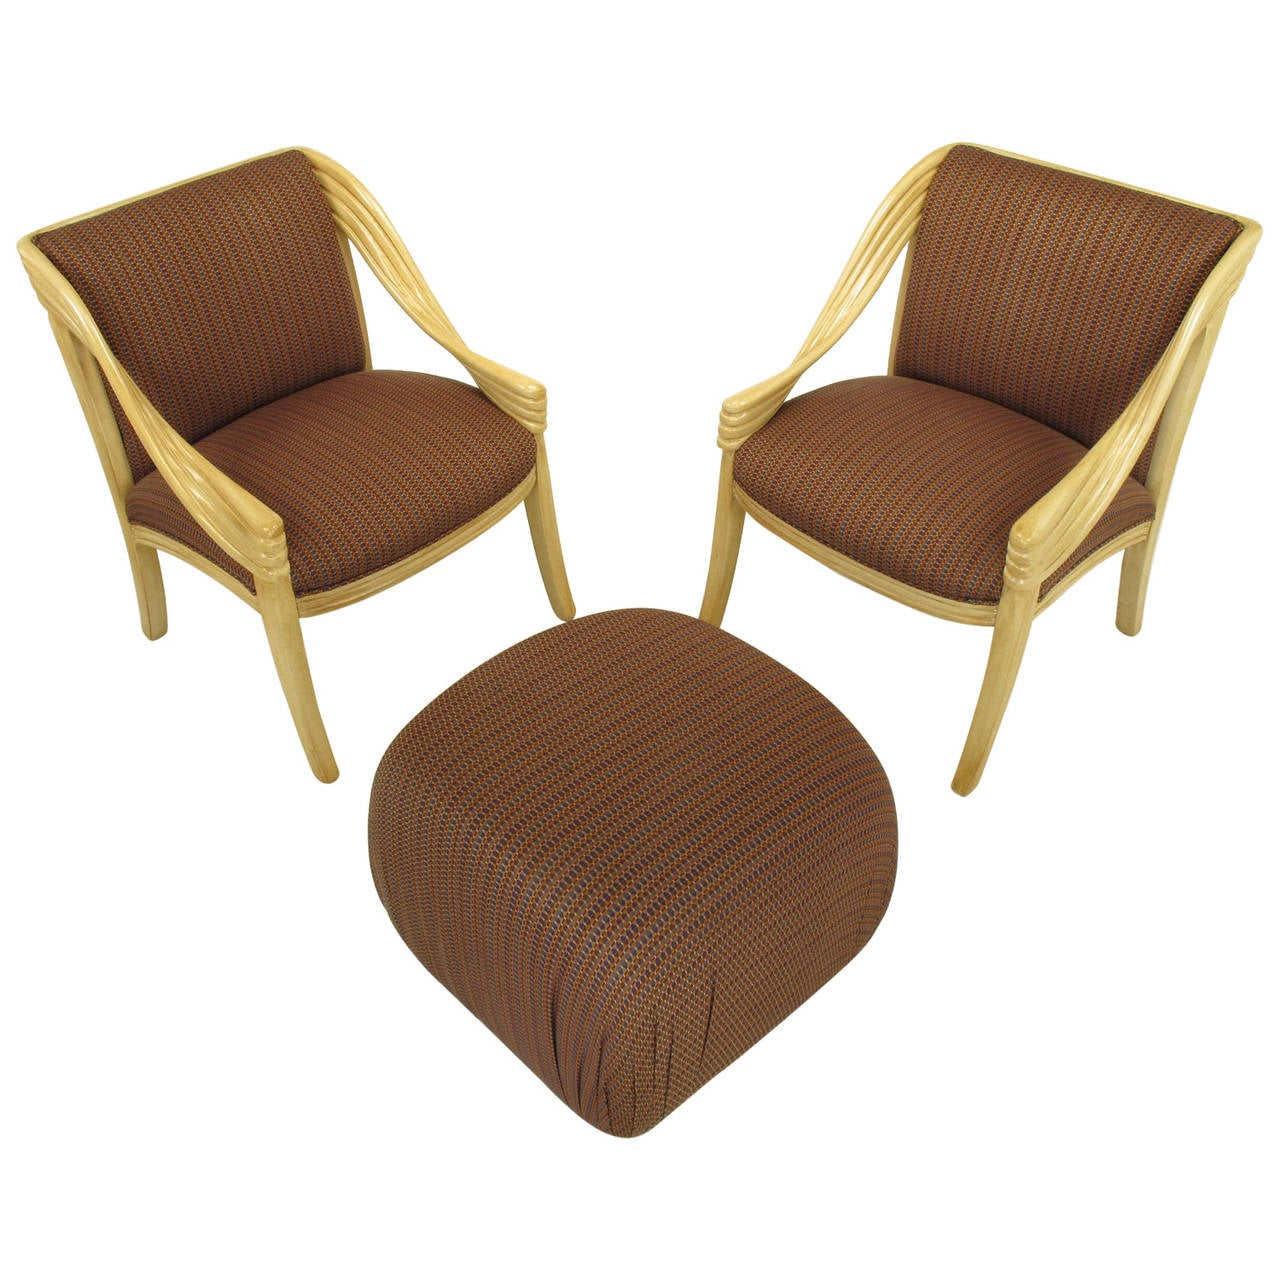 Pair of Weiman Hand-Carved Rattan-Form Lounge Chairs with Ottoman in Ivory Glaze